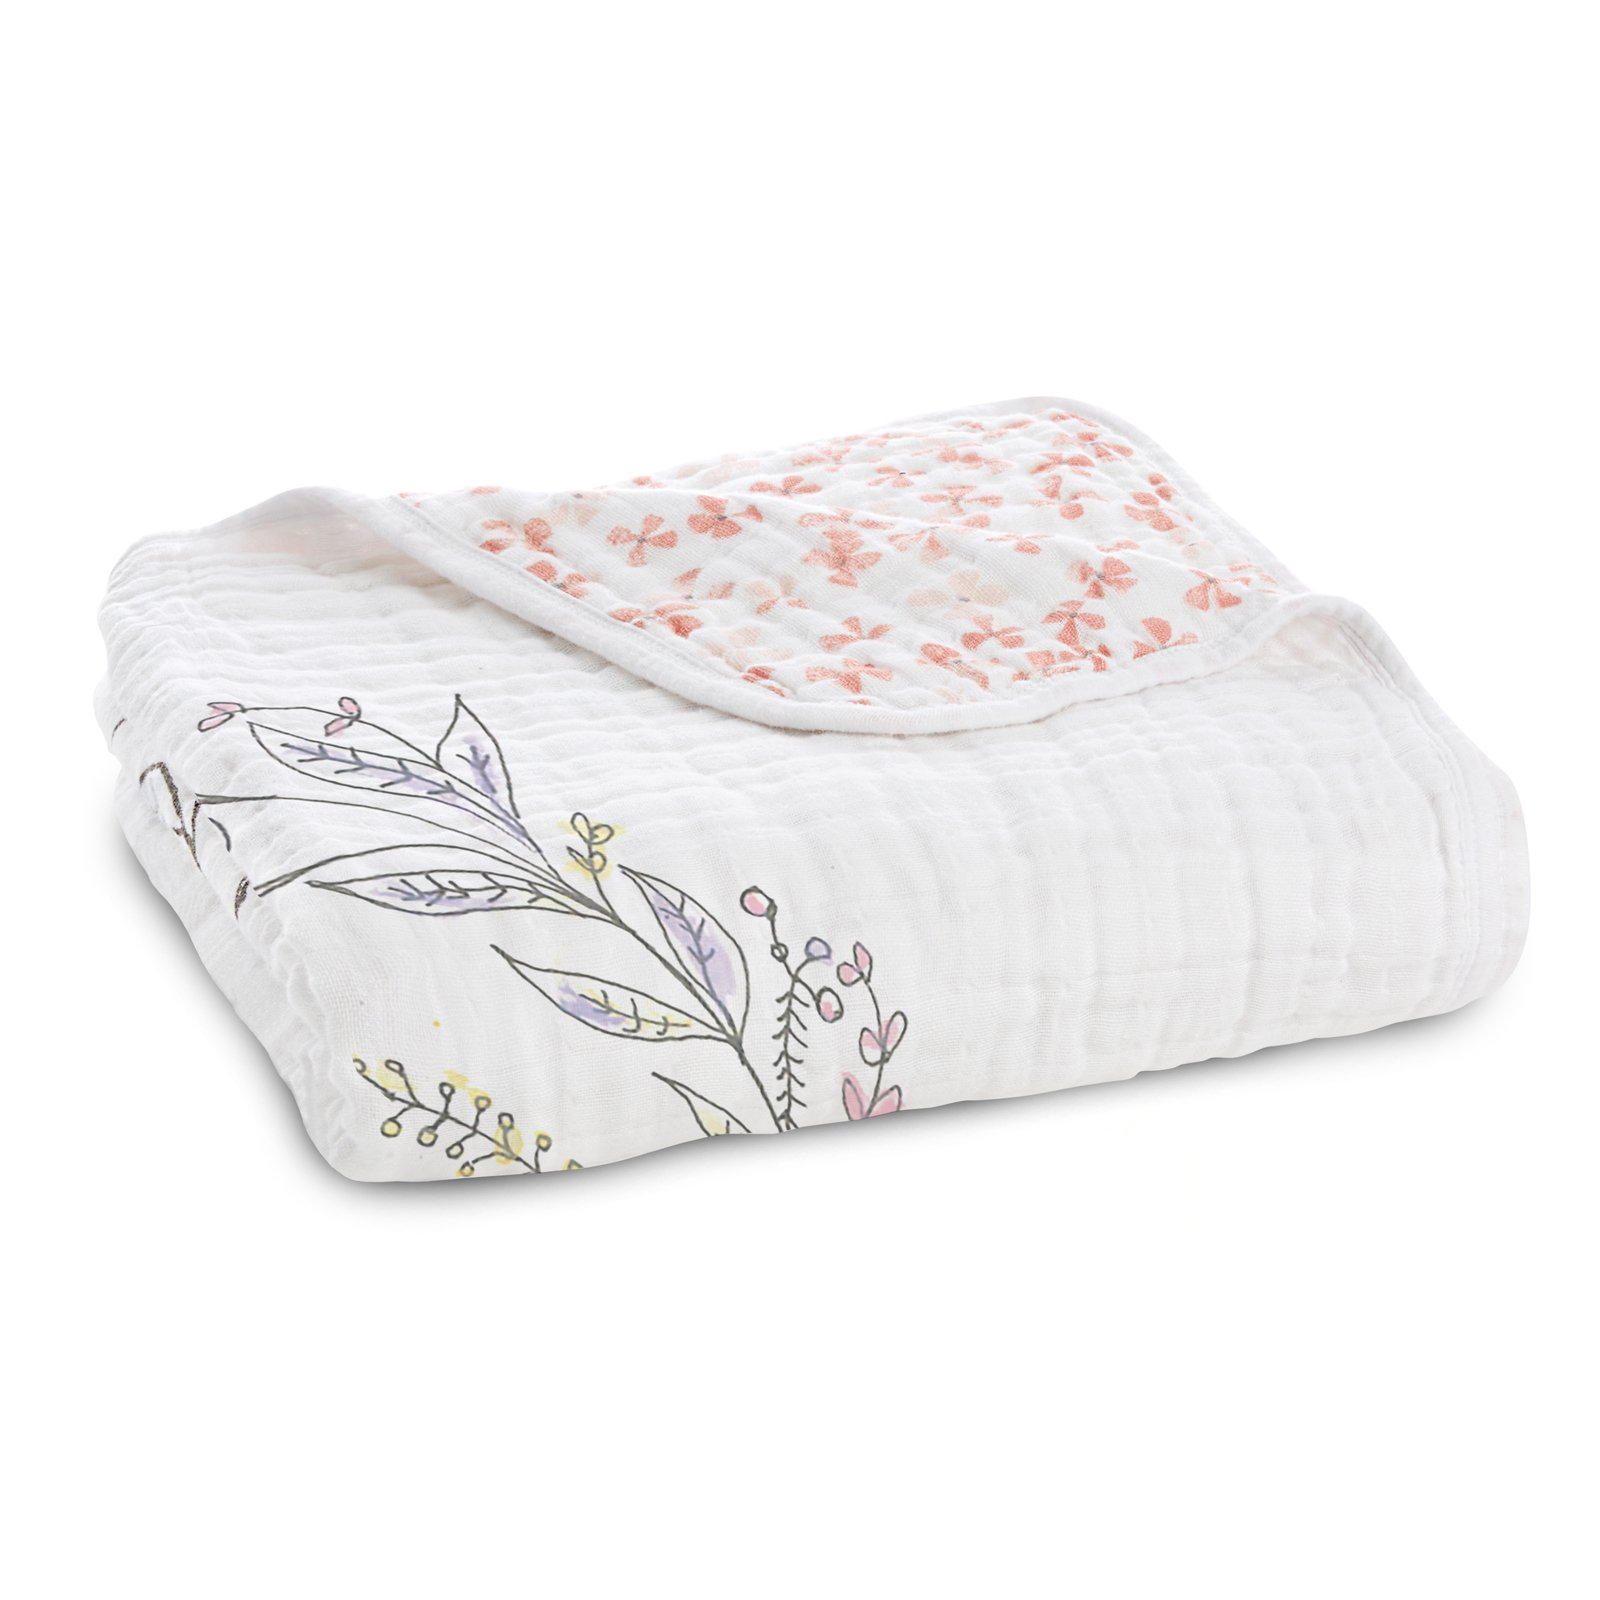 aden + anais Dream Blanket; 100% Cotton Muslin; 4 Layer lightweight and breathable; Large 47 X 47 inch; birdsong - noble nest by aden + anais (Image #3)